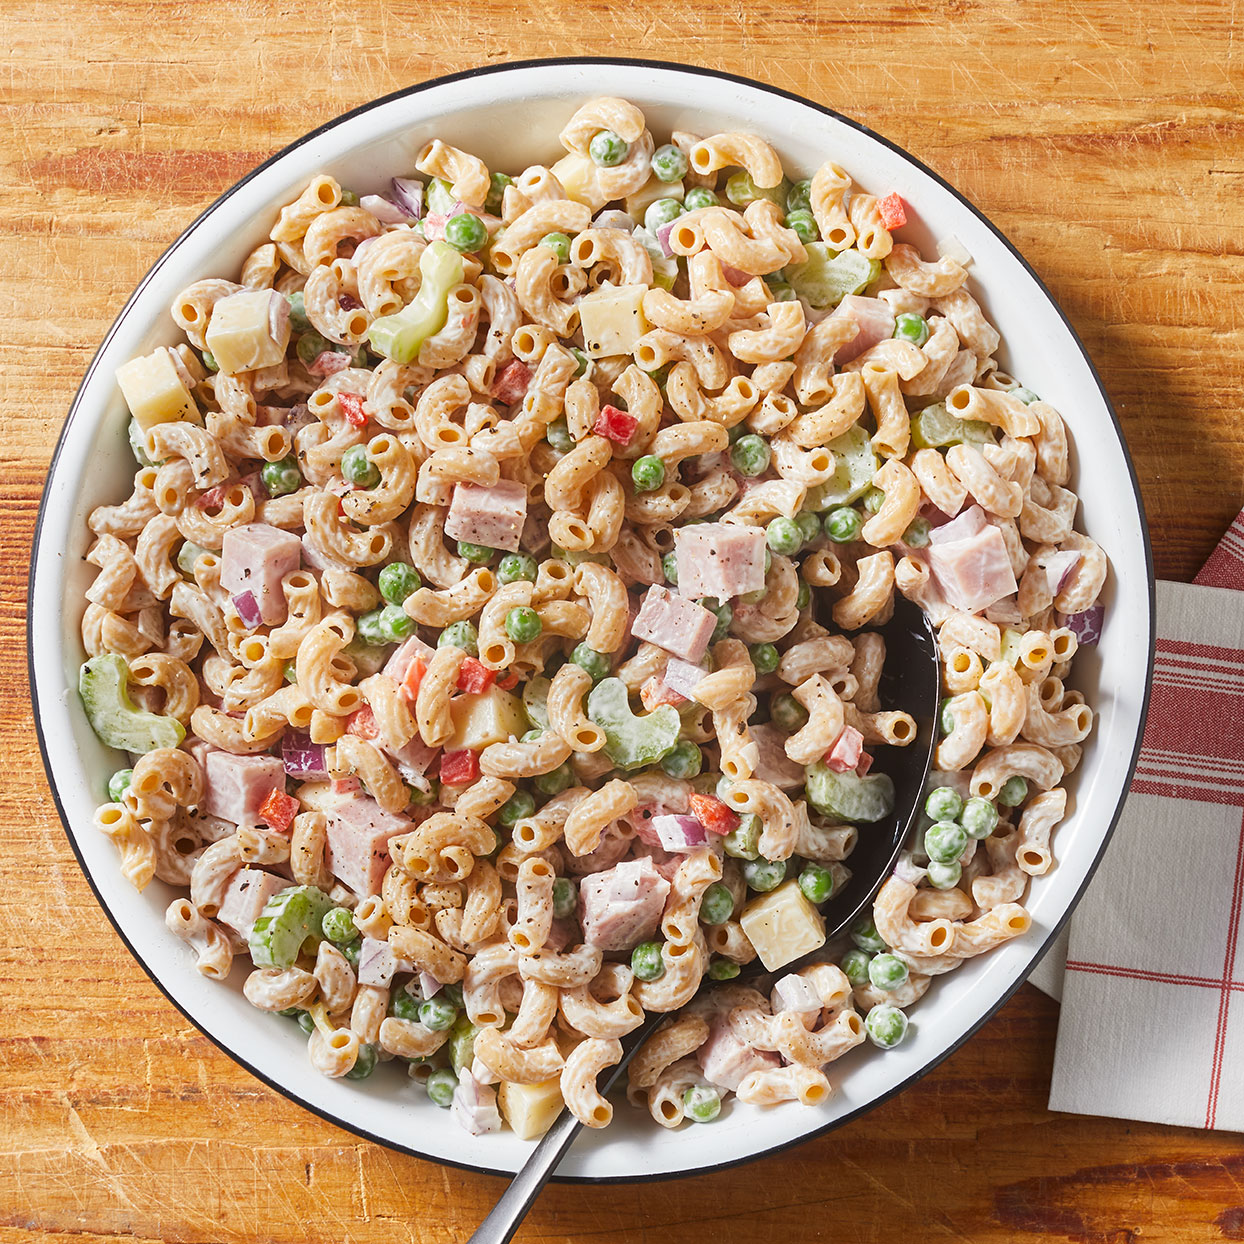 Bring this quintessential Southern macaroni salad, made with whole-wheat macaroni, celery, peas and ham, to your next picnic or barbecue. It's the perfect salad to feed a crowd! Source: EatingWell.com, April 2020